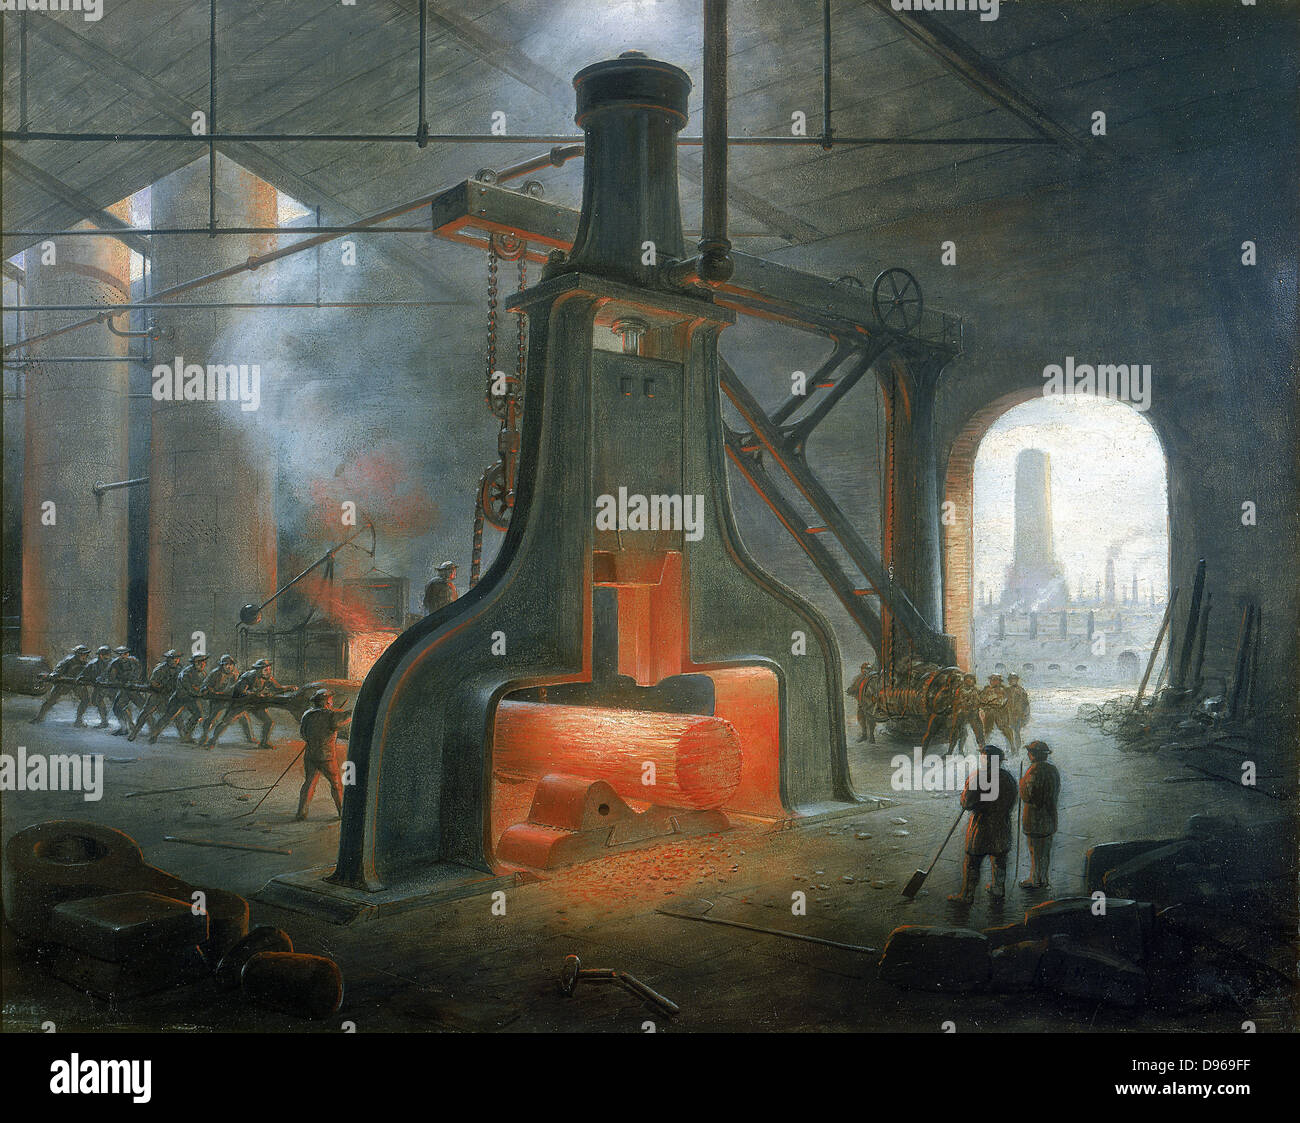 James Nasmyth's steam hammer erected in his foundry near Manchester in 1832. Painting by Nasmyth. Stock Photo